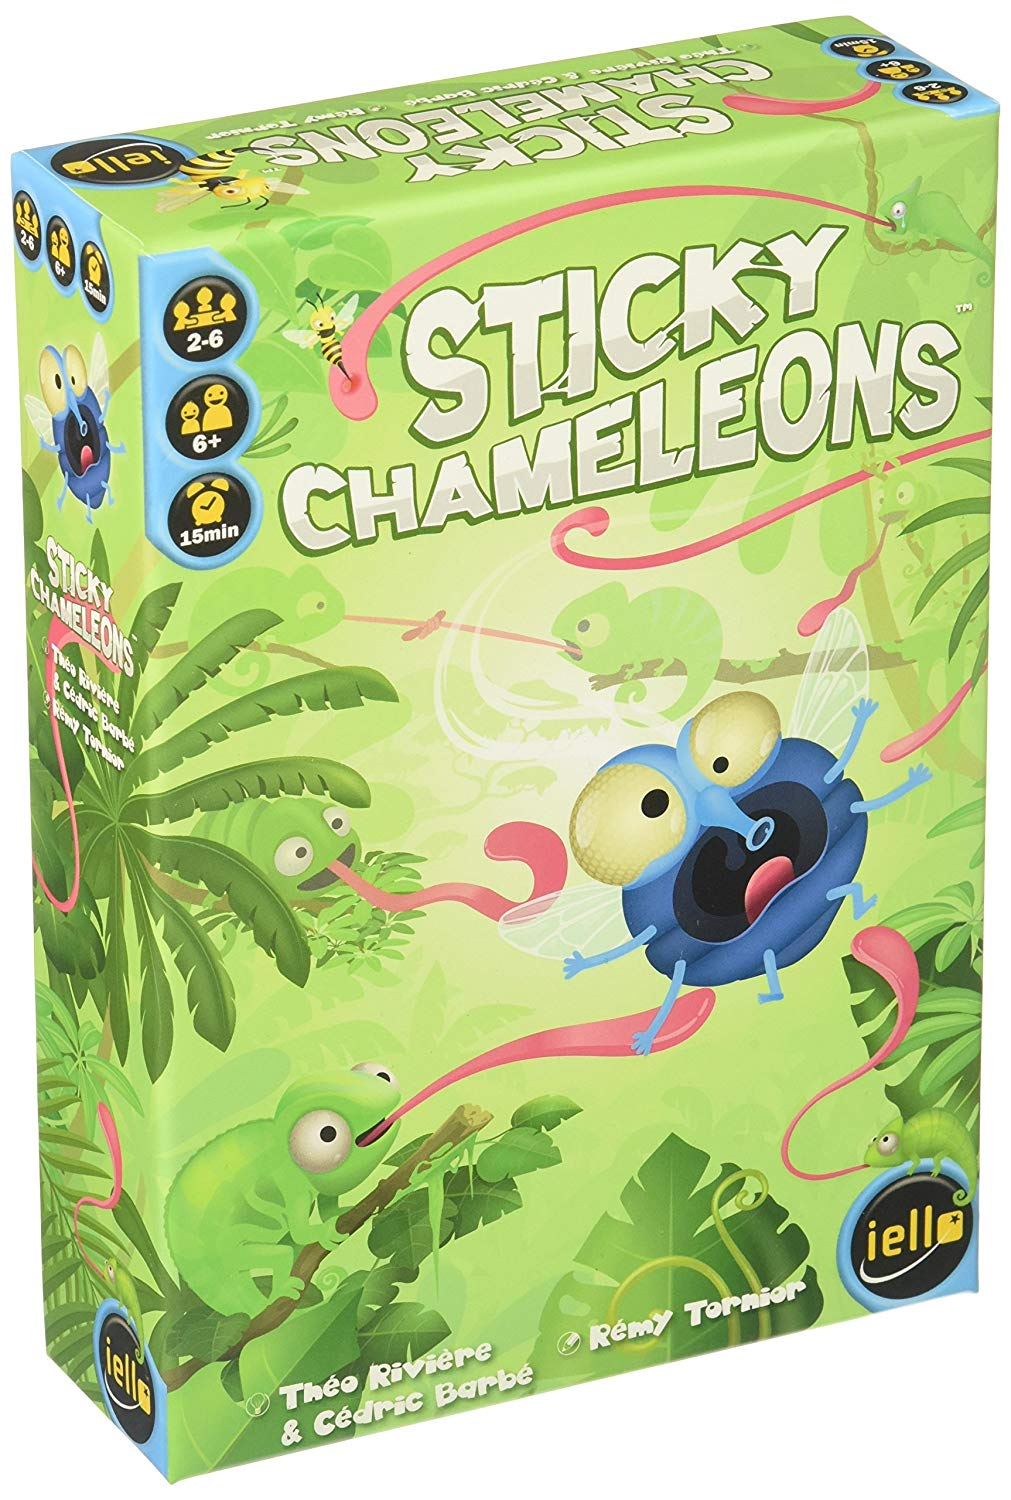 Win the board game Sticky Chameleons Giveaway Image